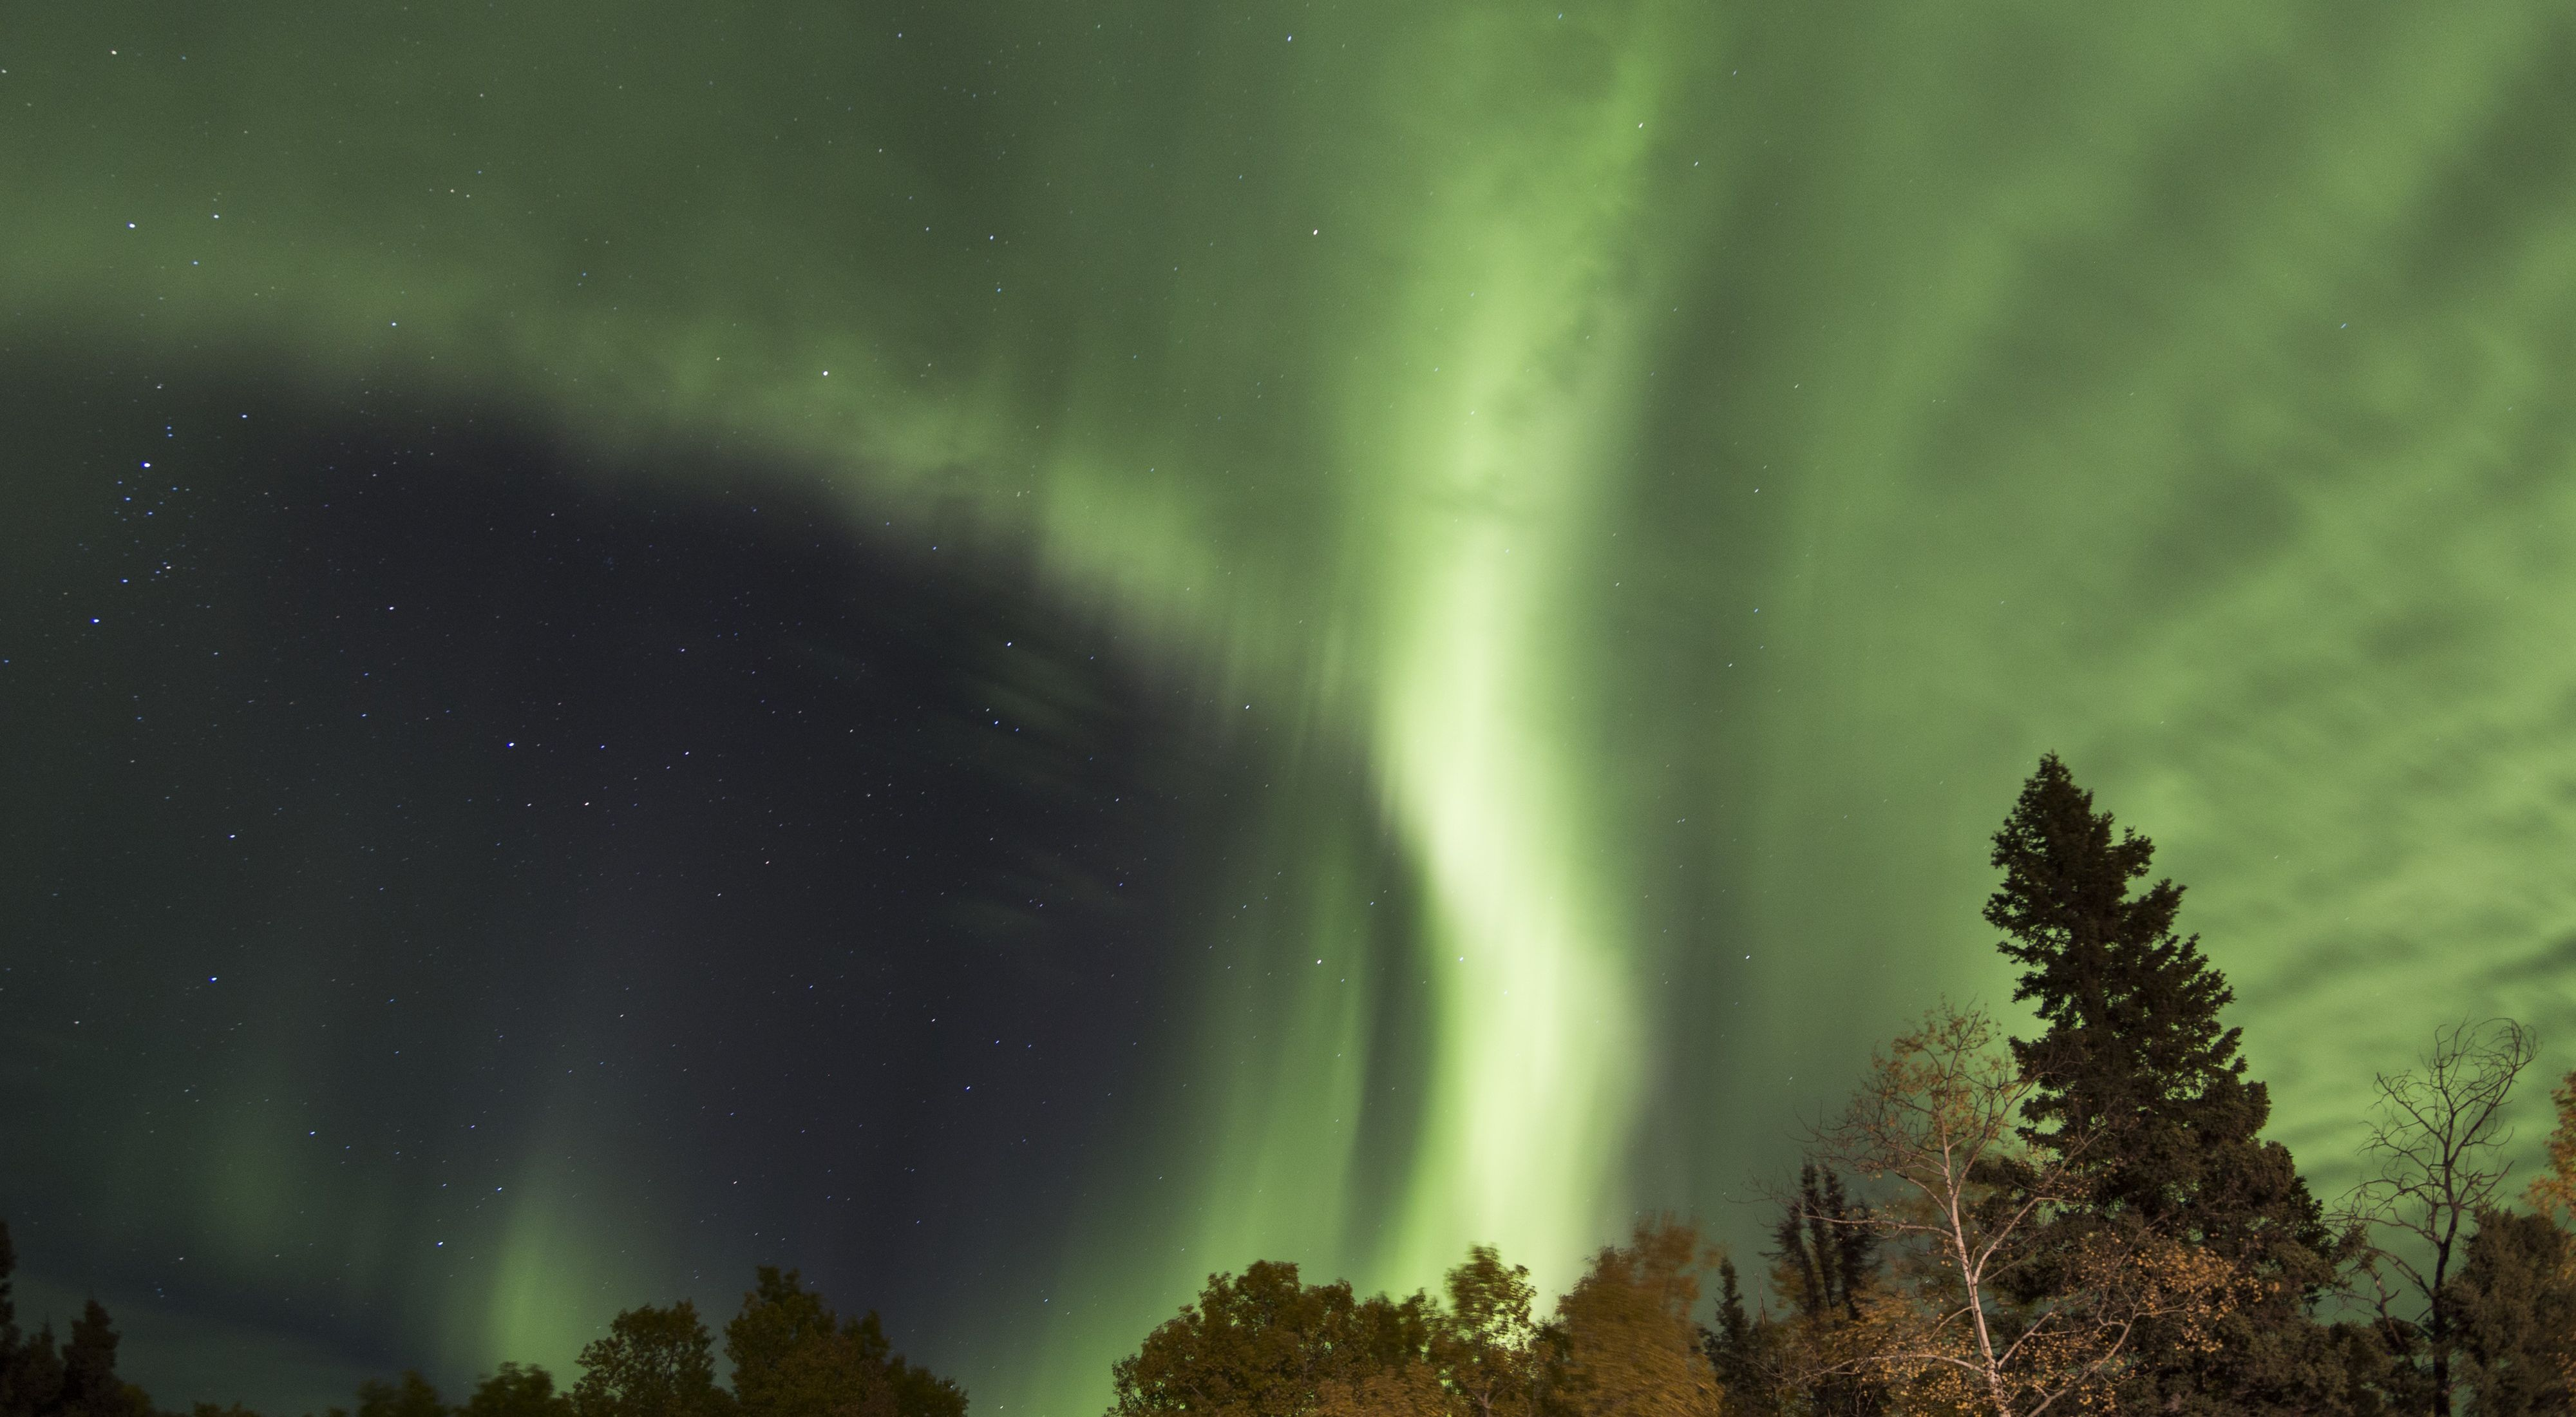 In northern Manitoba, the aura borealis shines over the boreal forest.